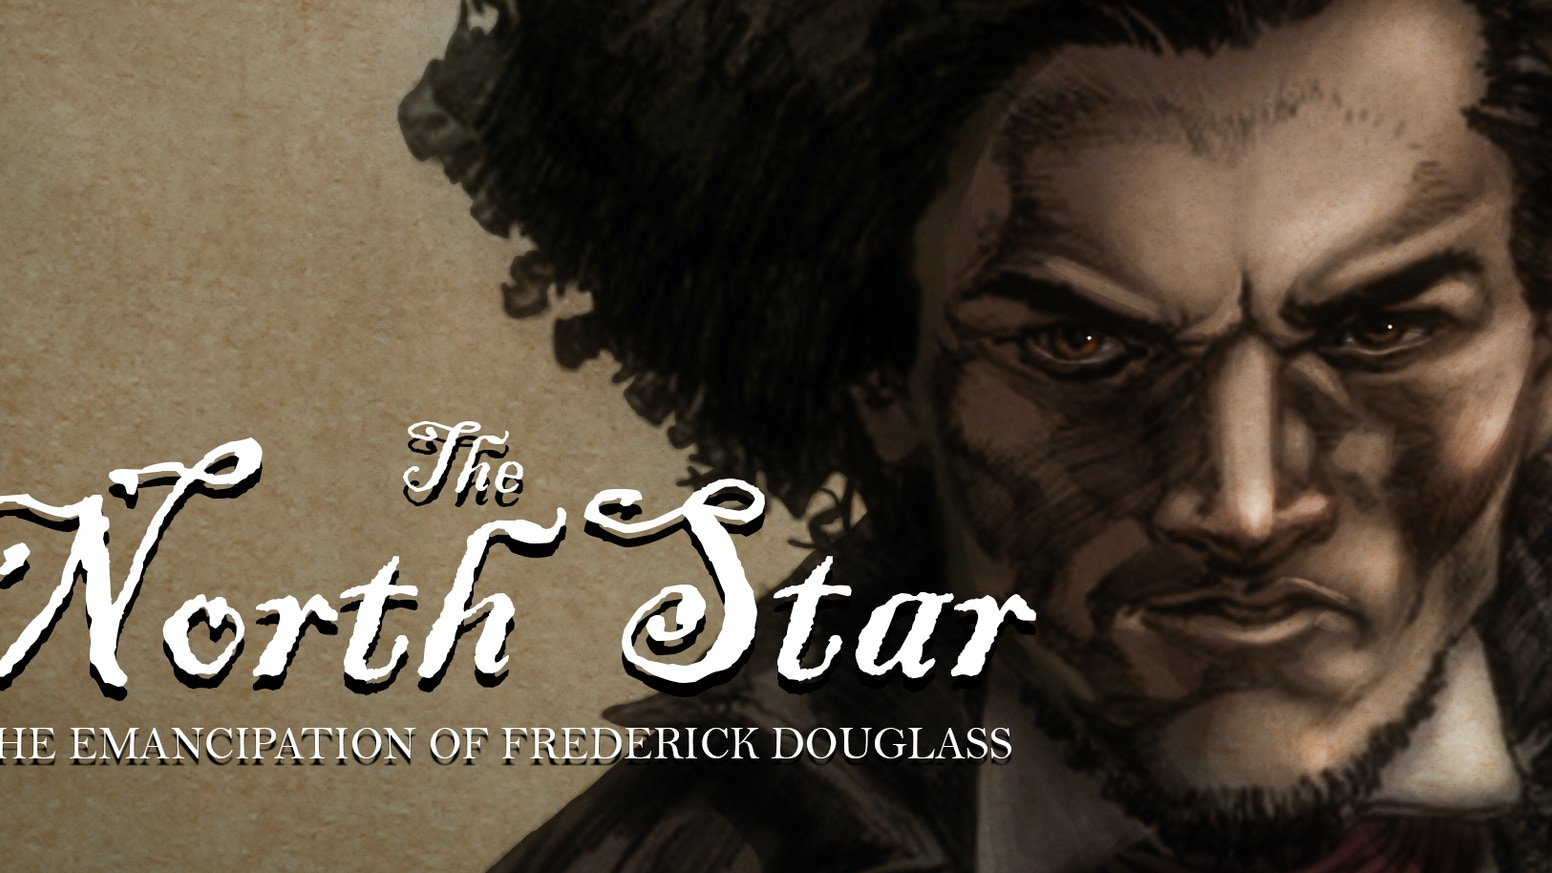 A comic book series about the life of Frederick Douglass.